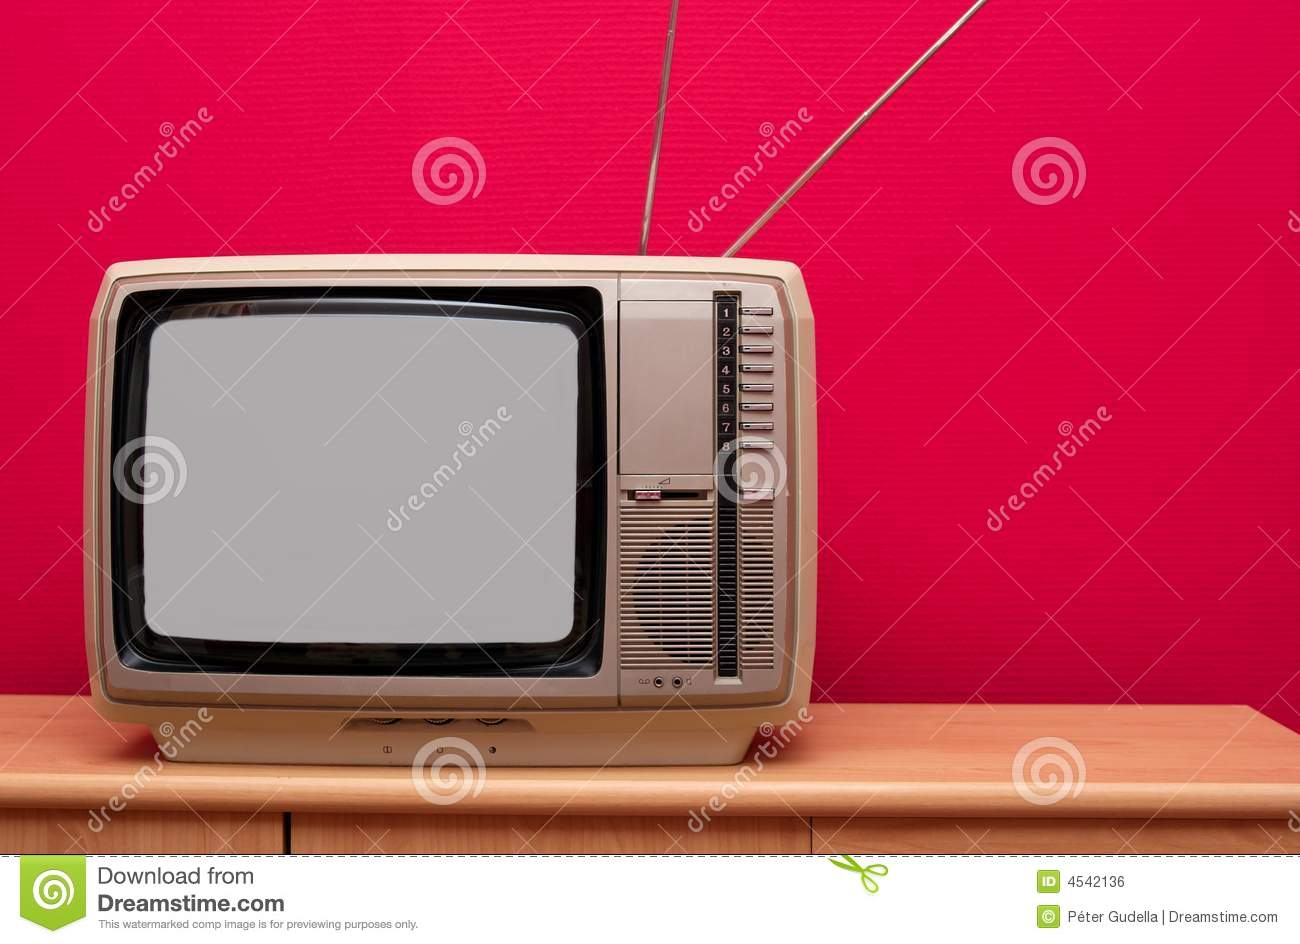 TV stock photo. Image of color 36f37780f2b